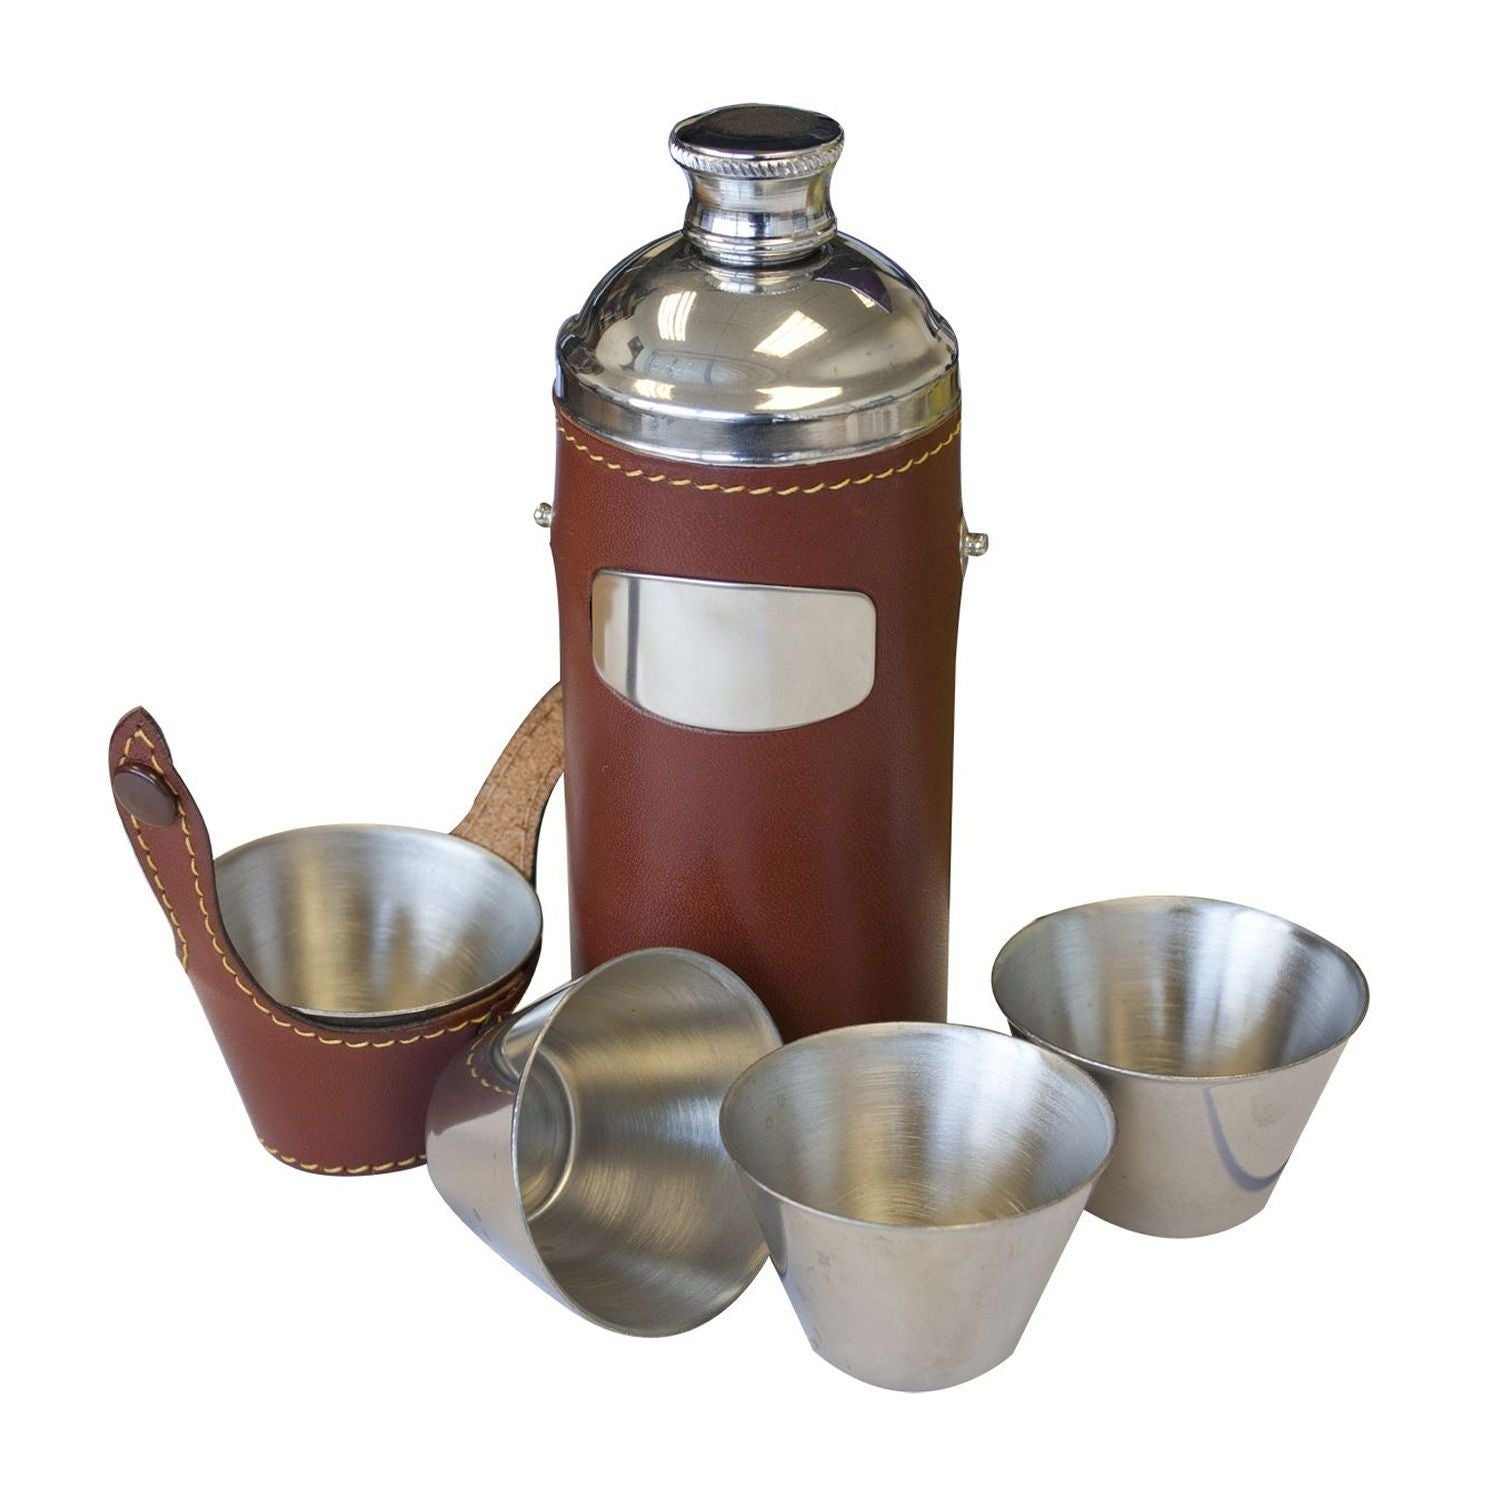 8oz Hunters Flask & Cup Set by Bisley - reid outdoors